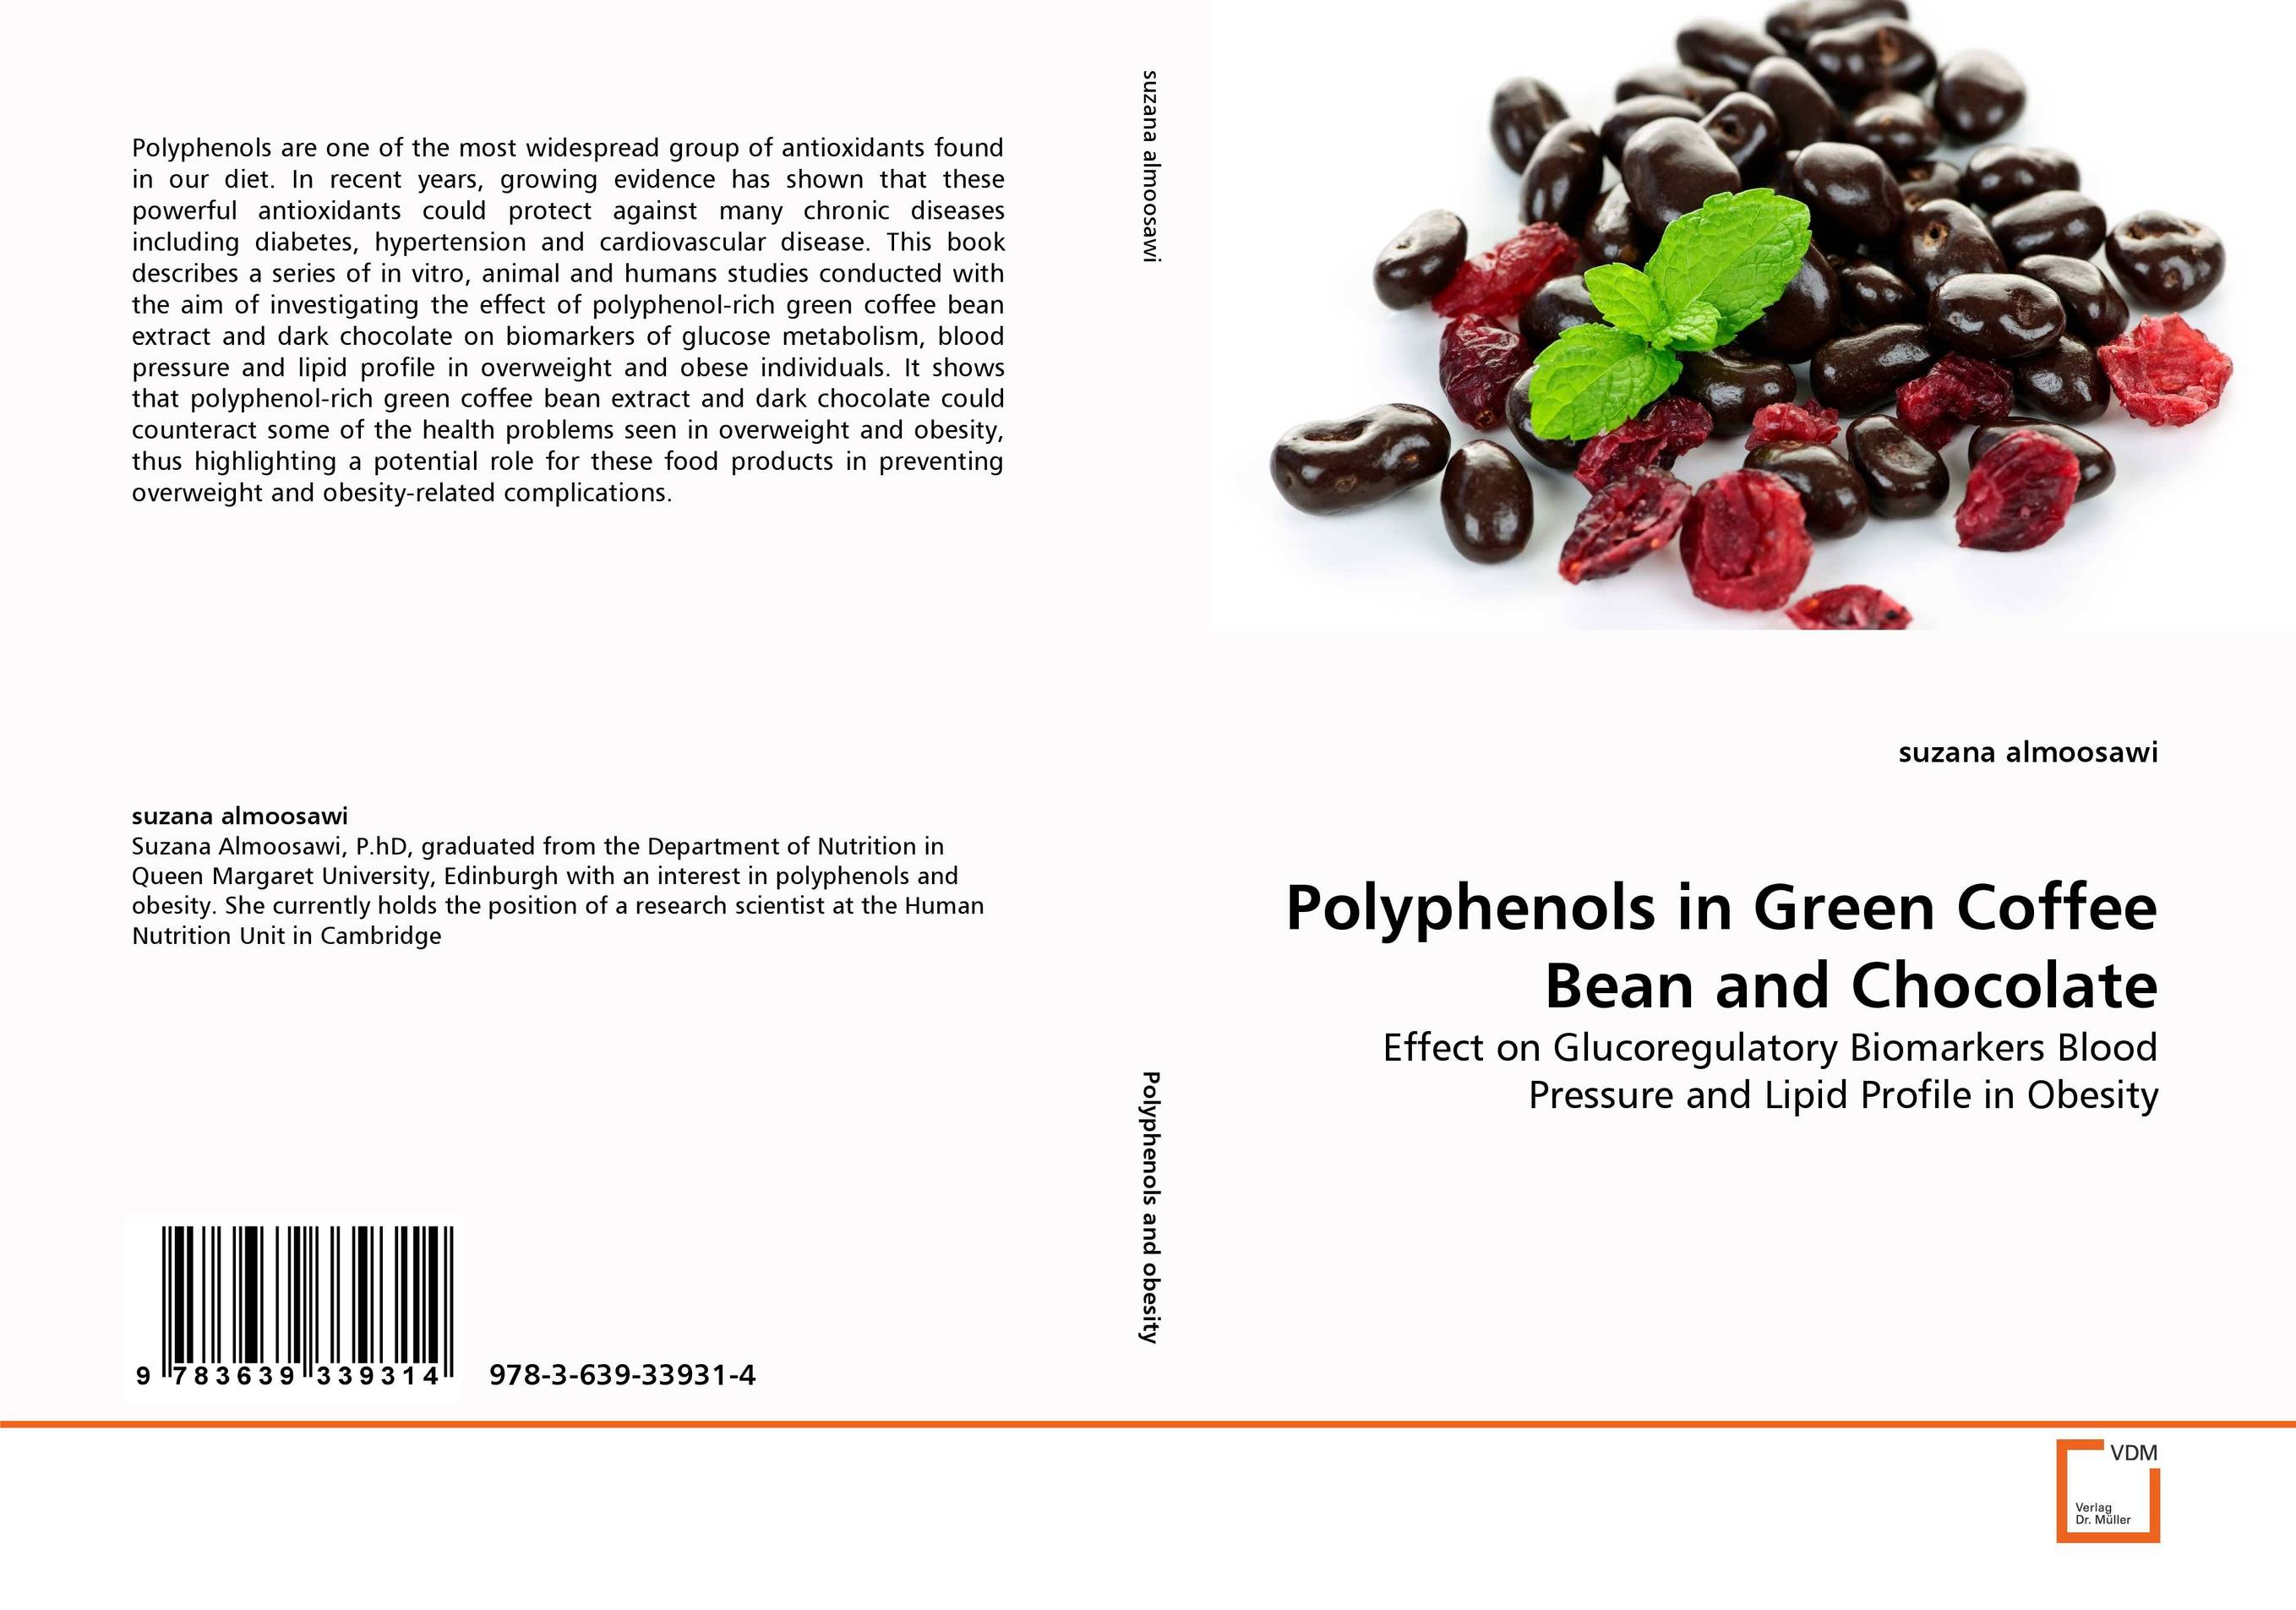 Polyphenols in Green Coffee Bean and Chocolate bulk powder pure green coffee bean extract 50